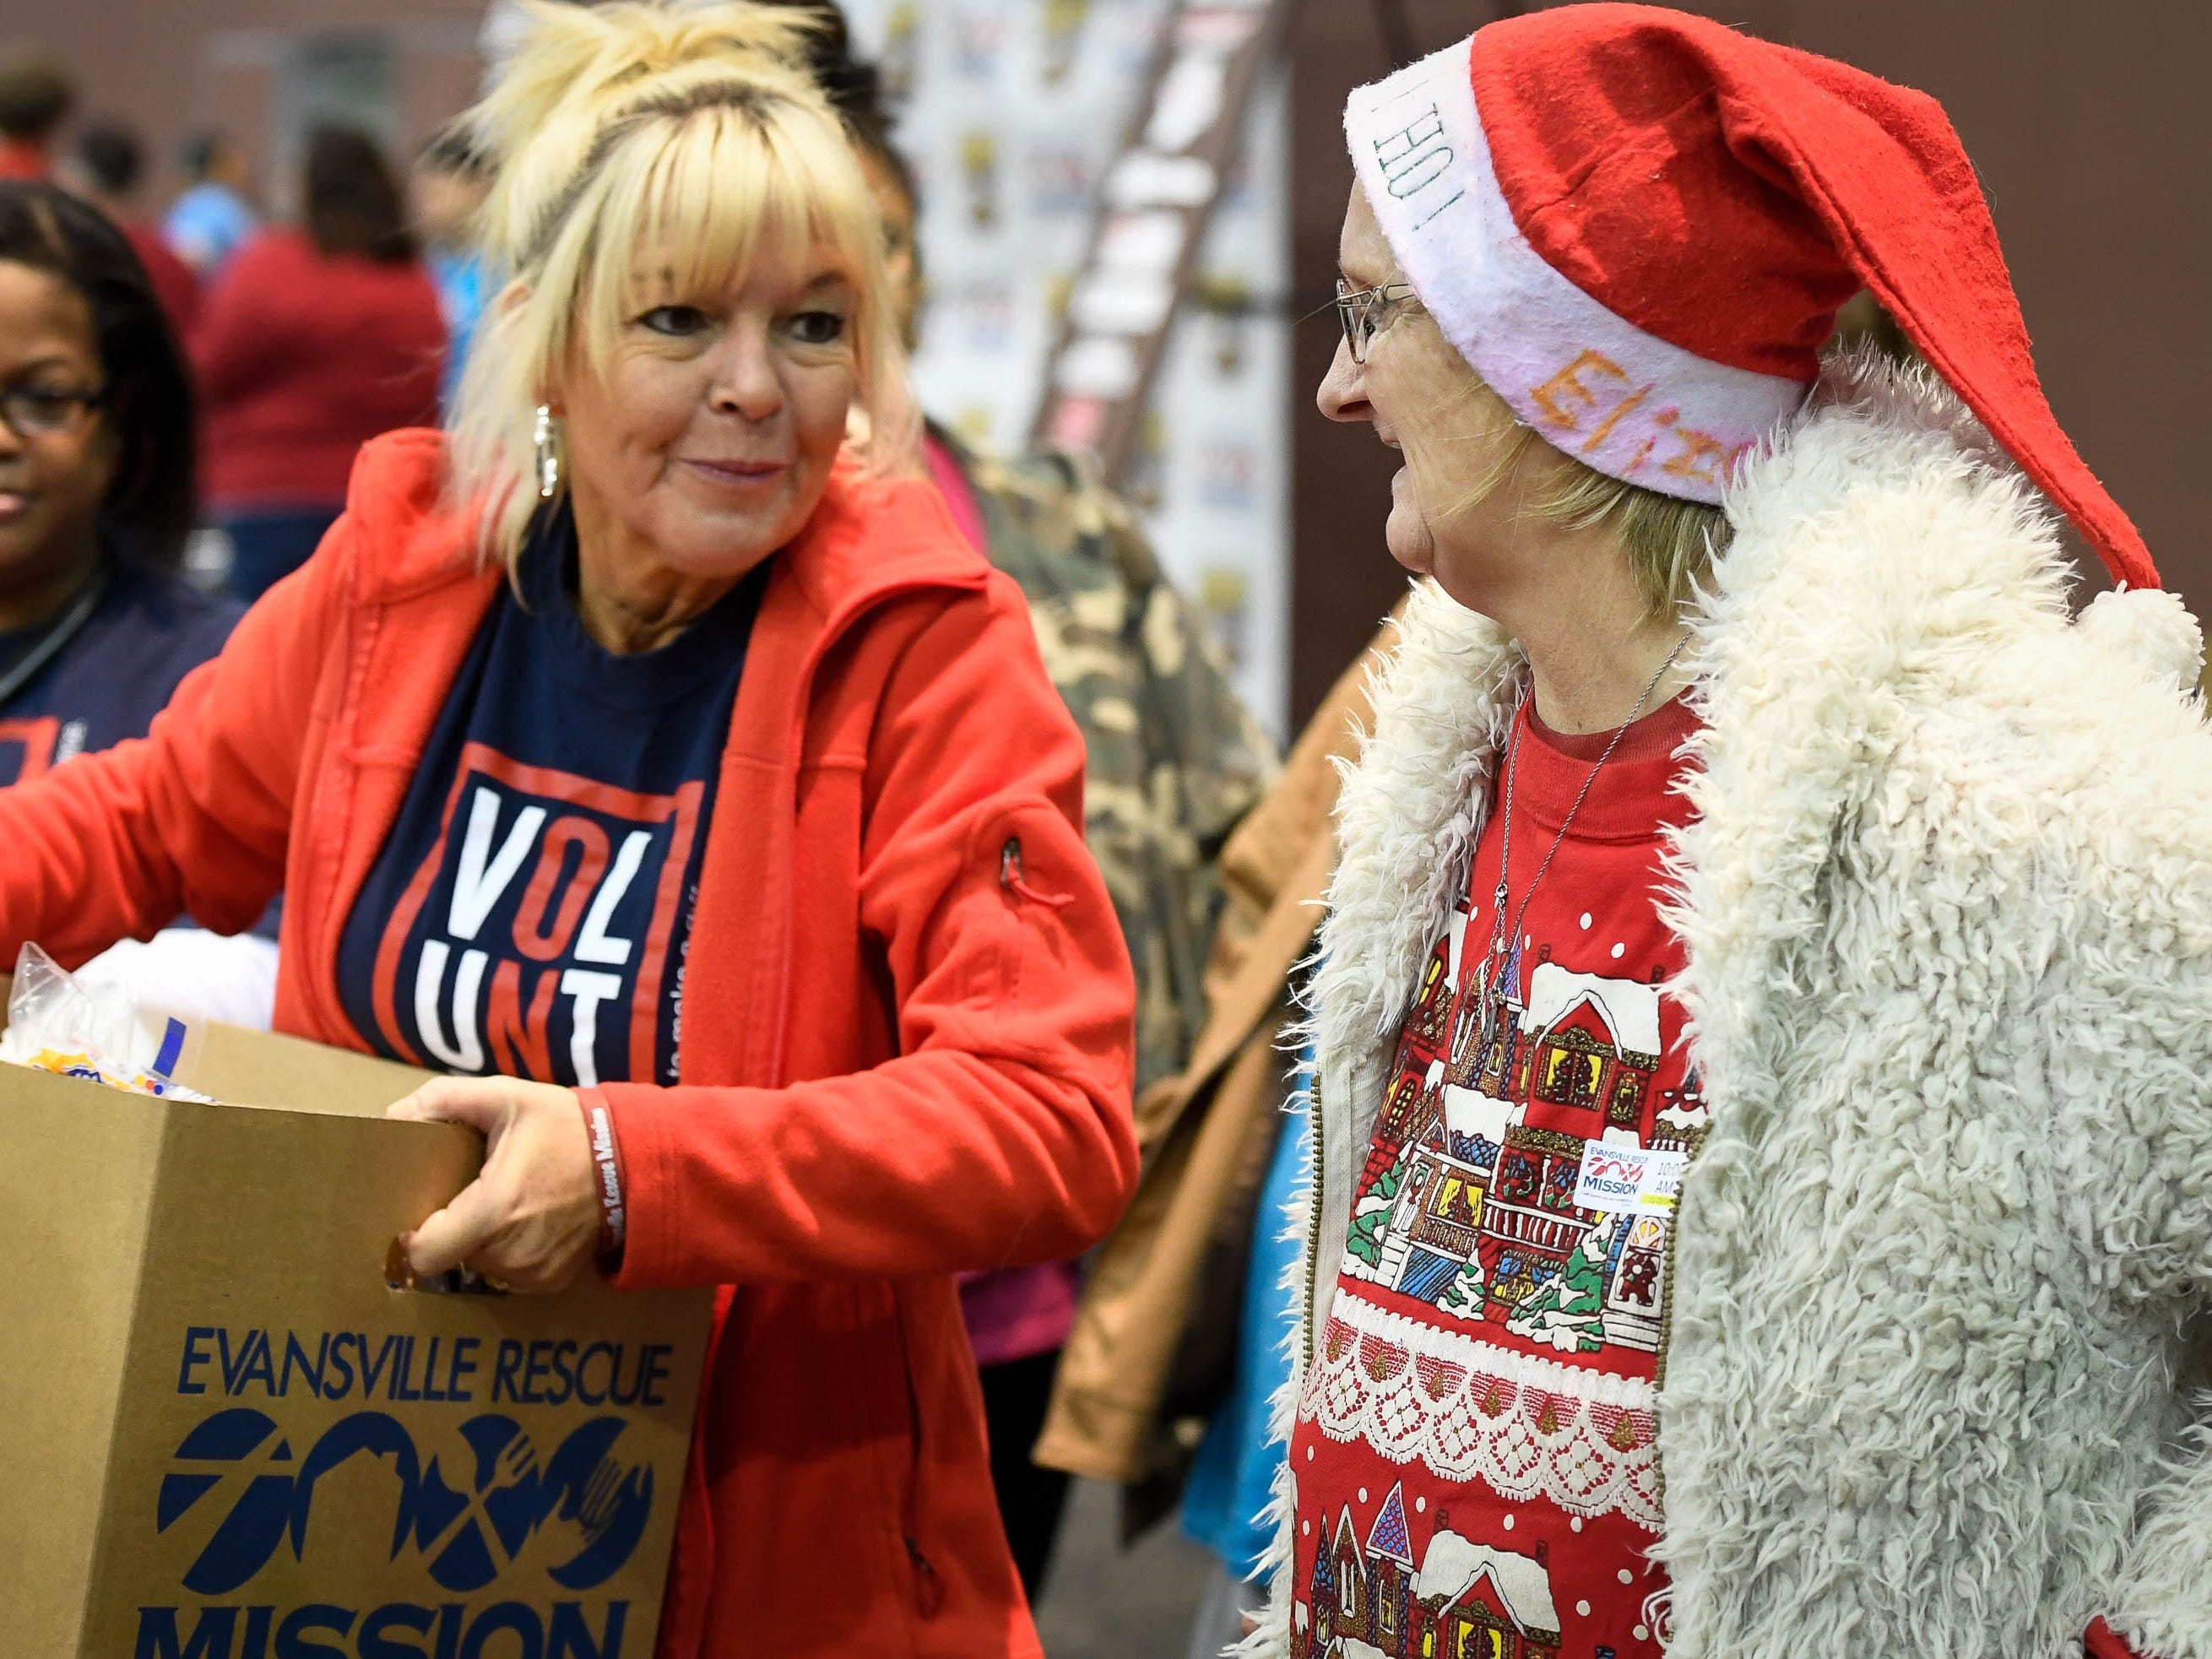 Volunteer Sarah Wooten, left, Mt. Vernon, helps Elizabeth Prange with her food box at the Evansville Rescue Mission's 96th annual Gobbler Gathering held at the Old National Events Plaza Tuesday, November 20, 2018.